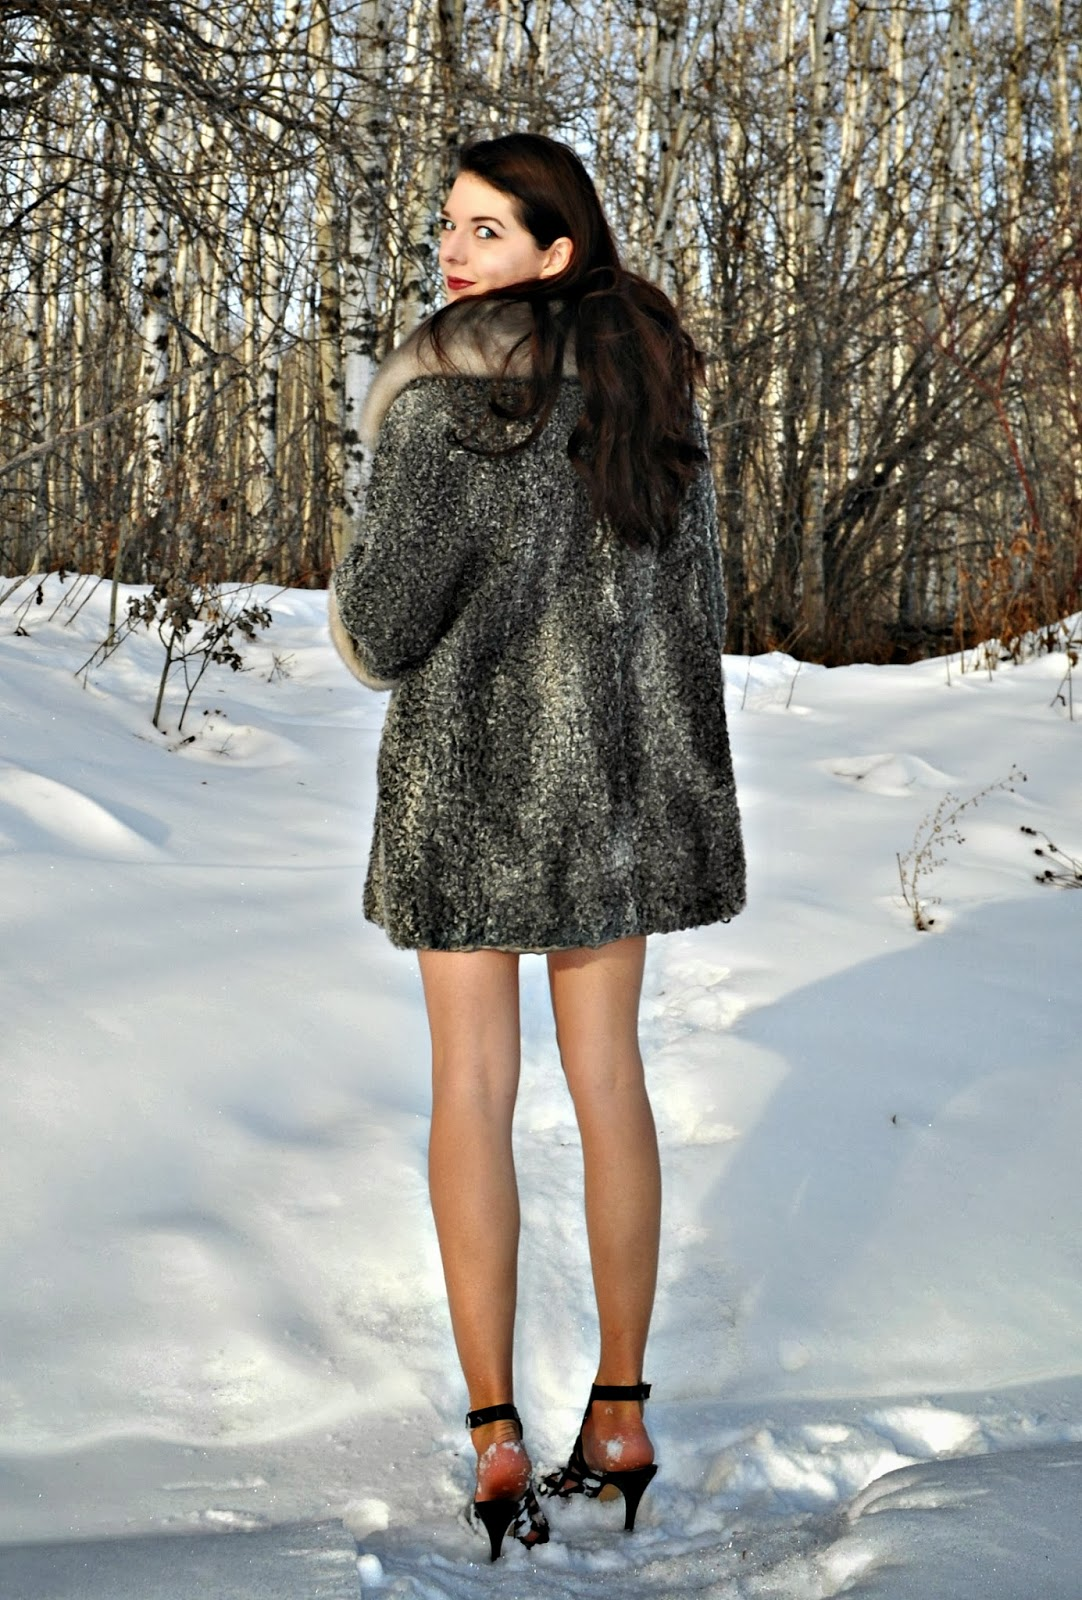 Stylsih Fur Coat